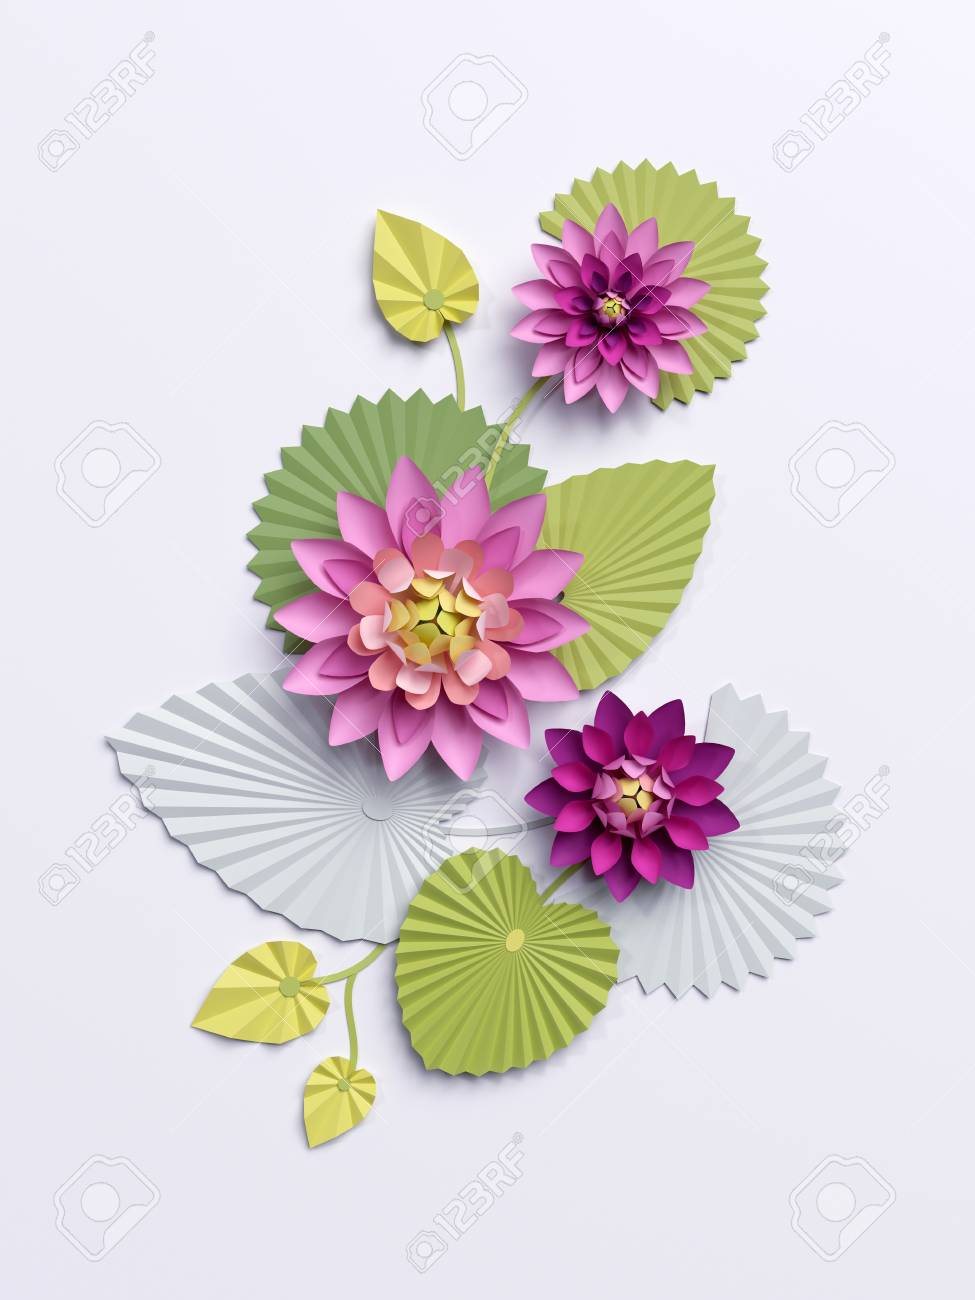 3d Render  Paper Lotus Flowers  Wall Decoration  Pink Water Lily     3d render  paper lotus flowers  wall decoration  pink water lily green  leaves isolated